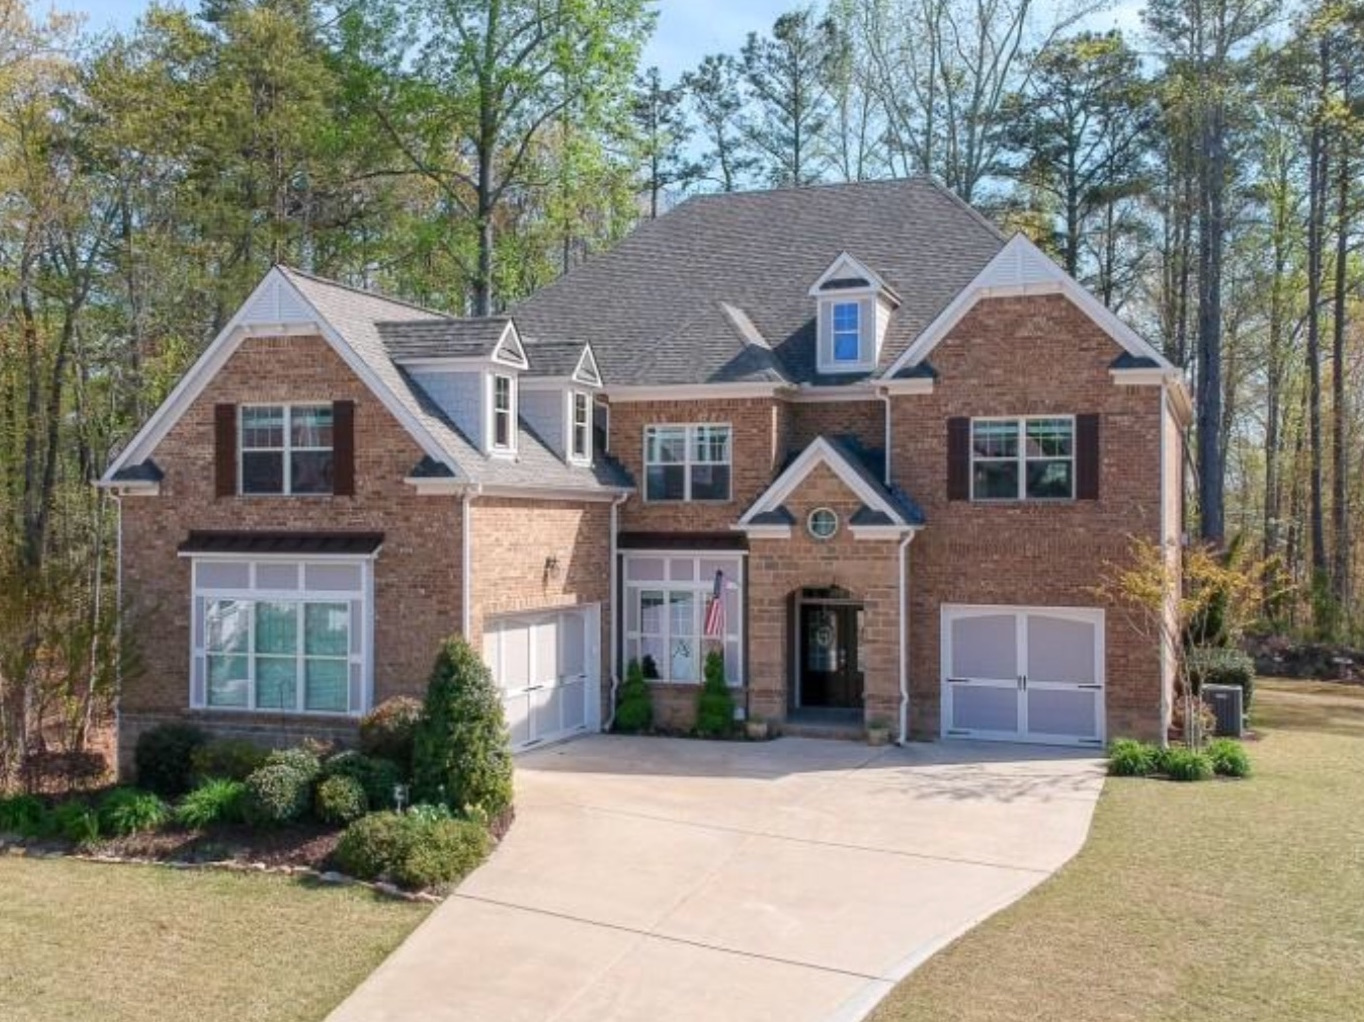 Sandy Springs - STUNNING 4BR 3/2, 3-side brick. Newly remodeled. Kitchen w/Thermador App/ leathered marble counters-custom cab Hardwoods throughout main. $125k in upgrades! You will not be disappointed!